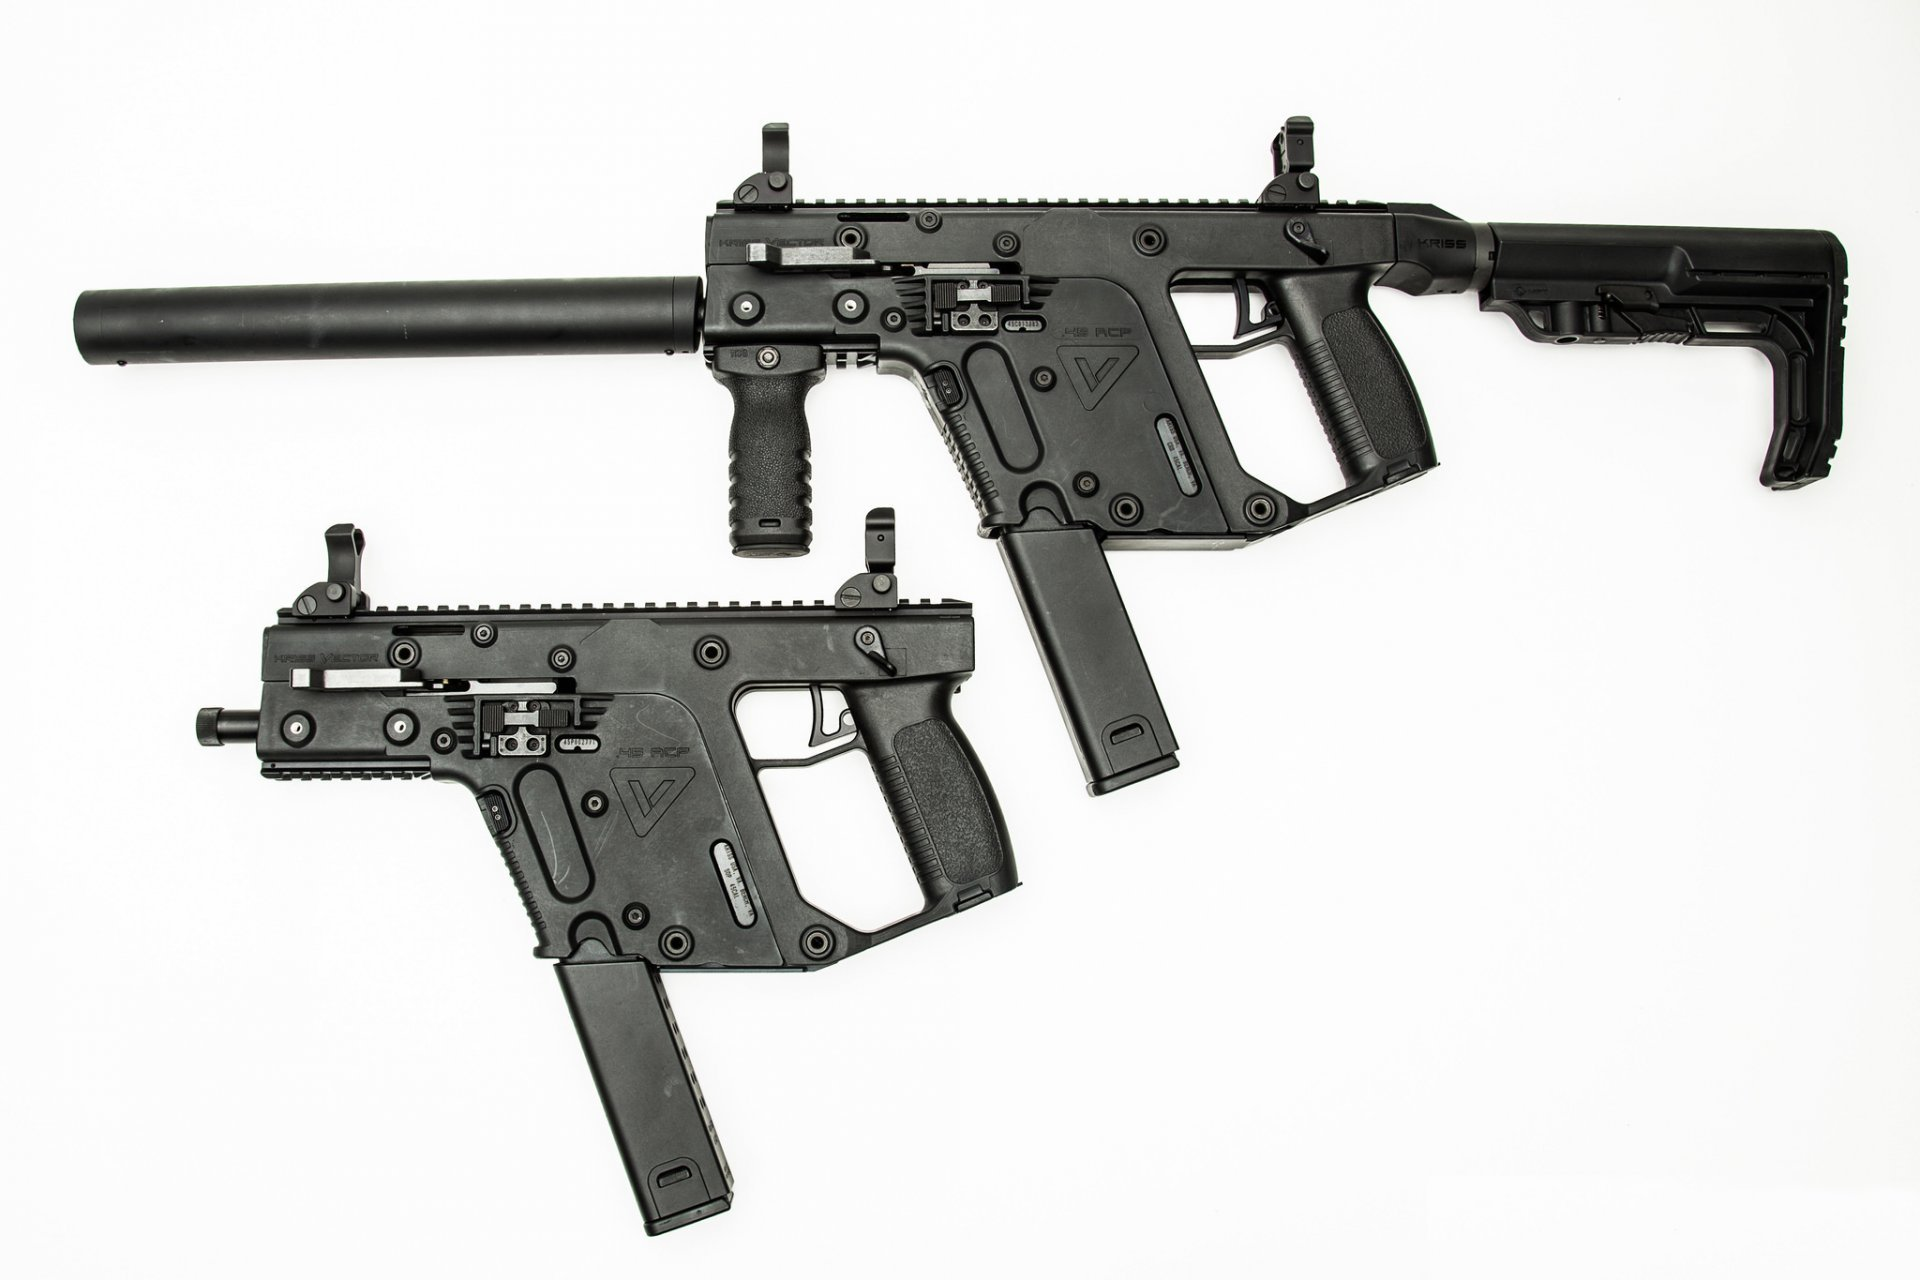 KRISS Vector Super V Pics, Weapons Collection